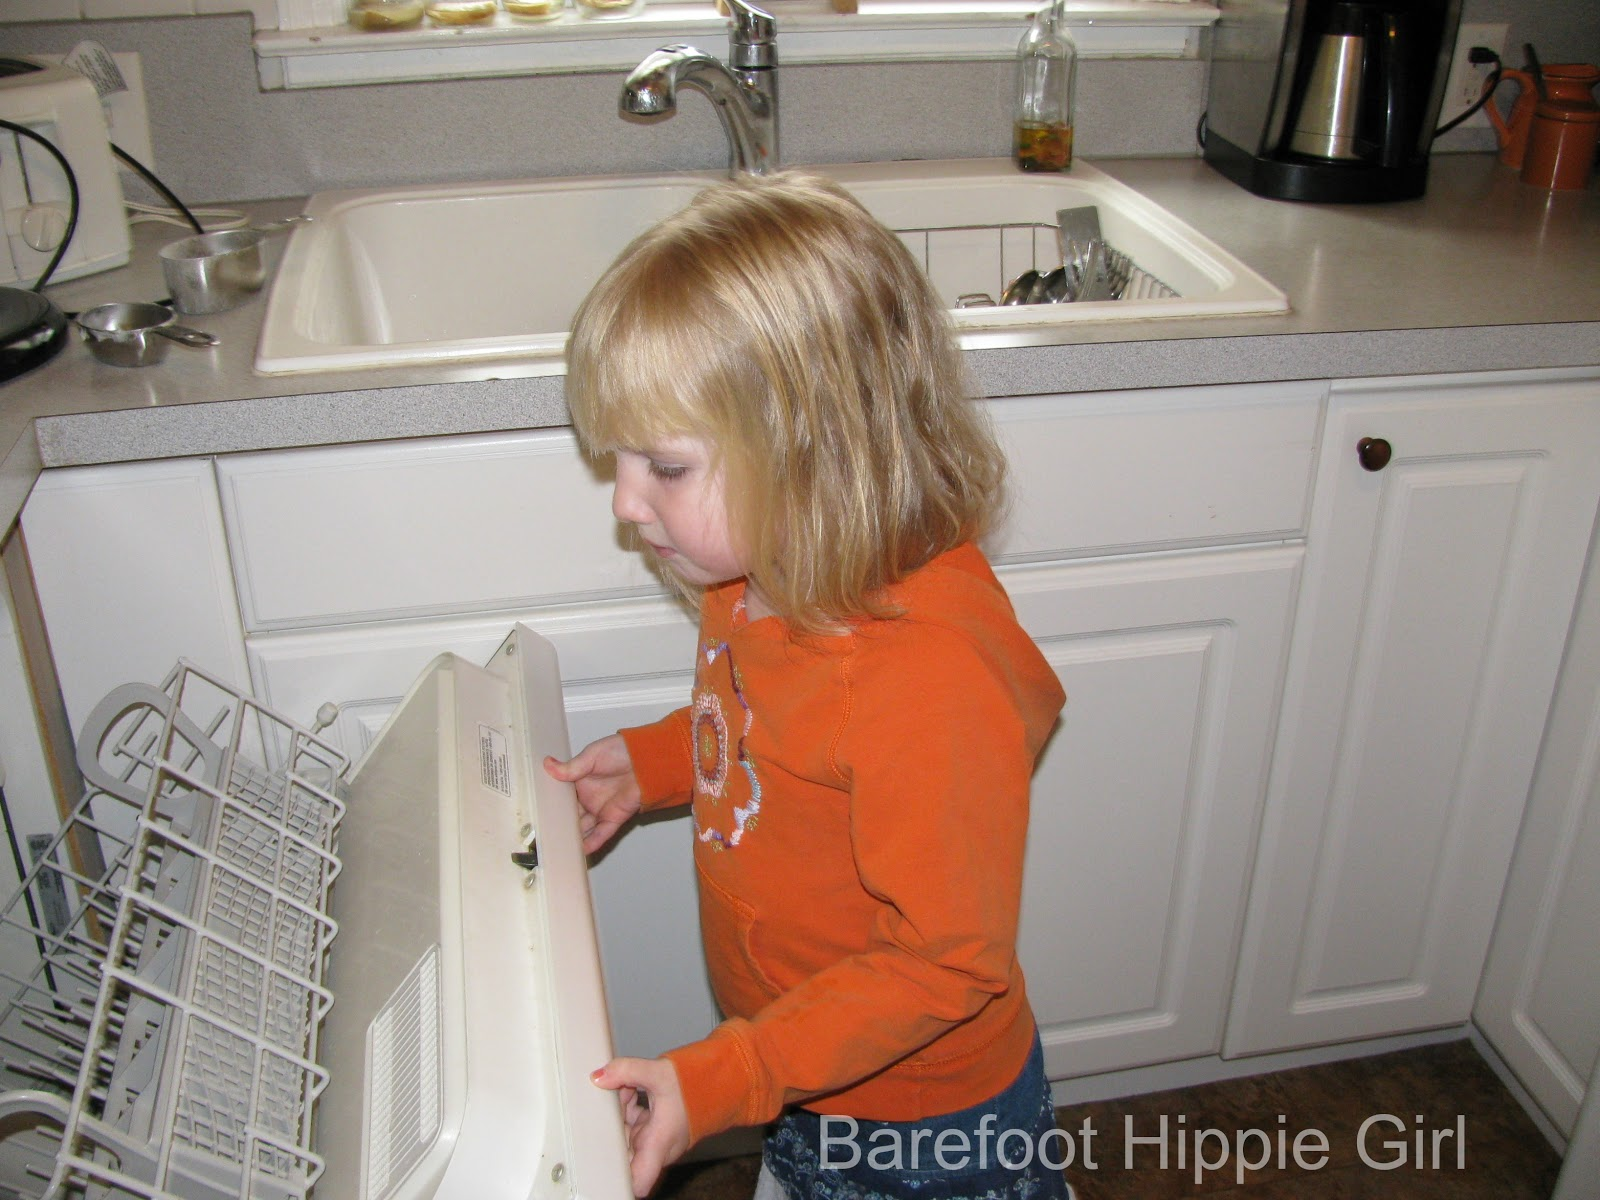 Barefoot Hippie Girl 3 Strategies To Not Drop The House